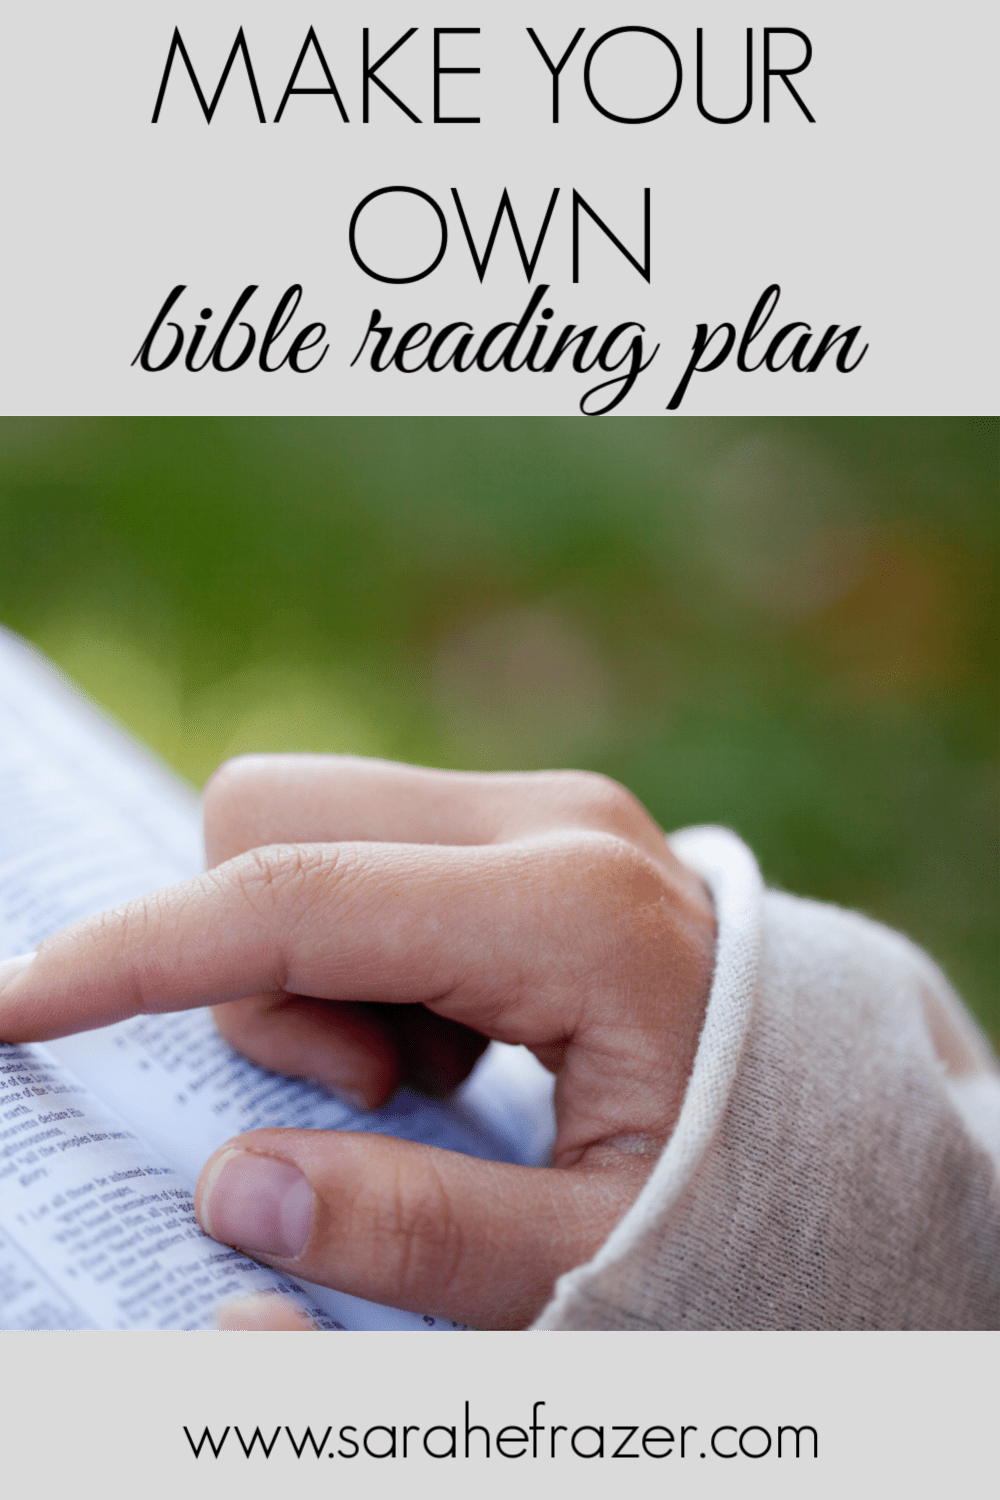 Three Steps to Make Your Own Bible Reading Plan